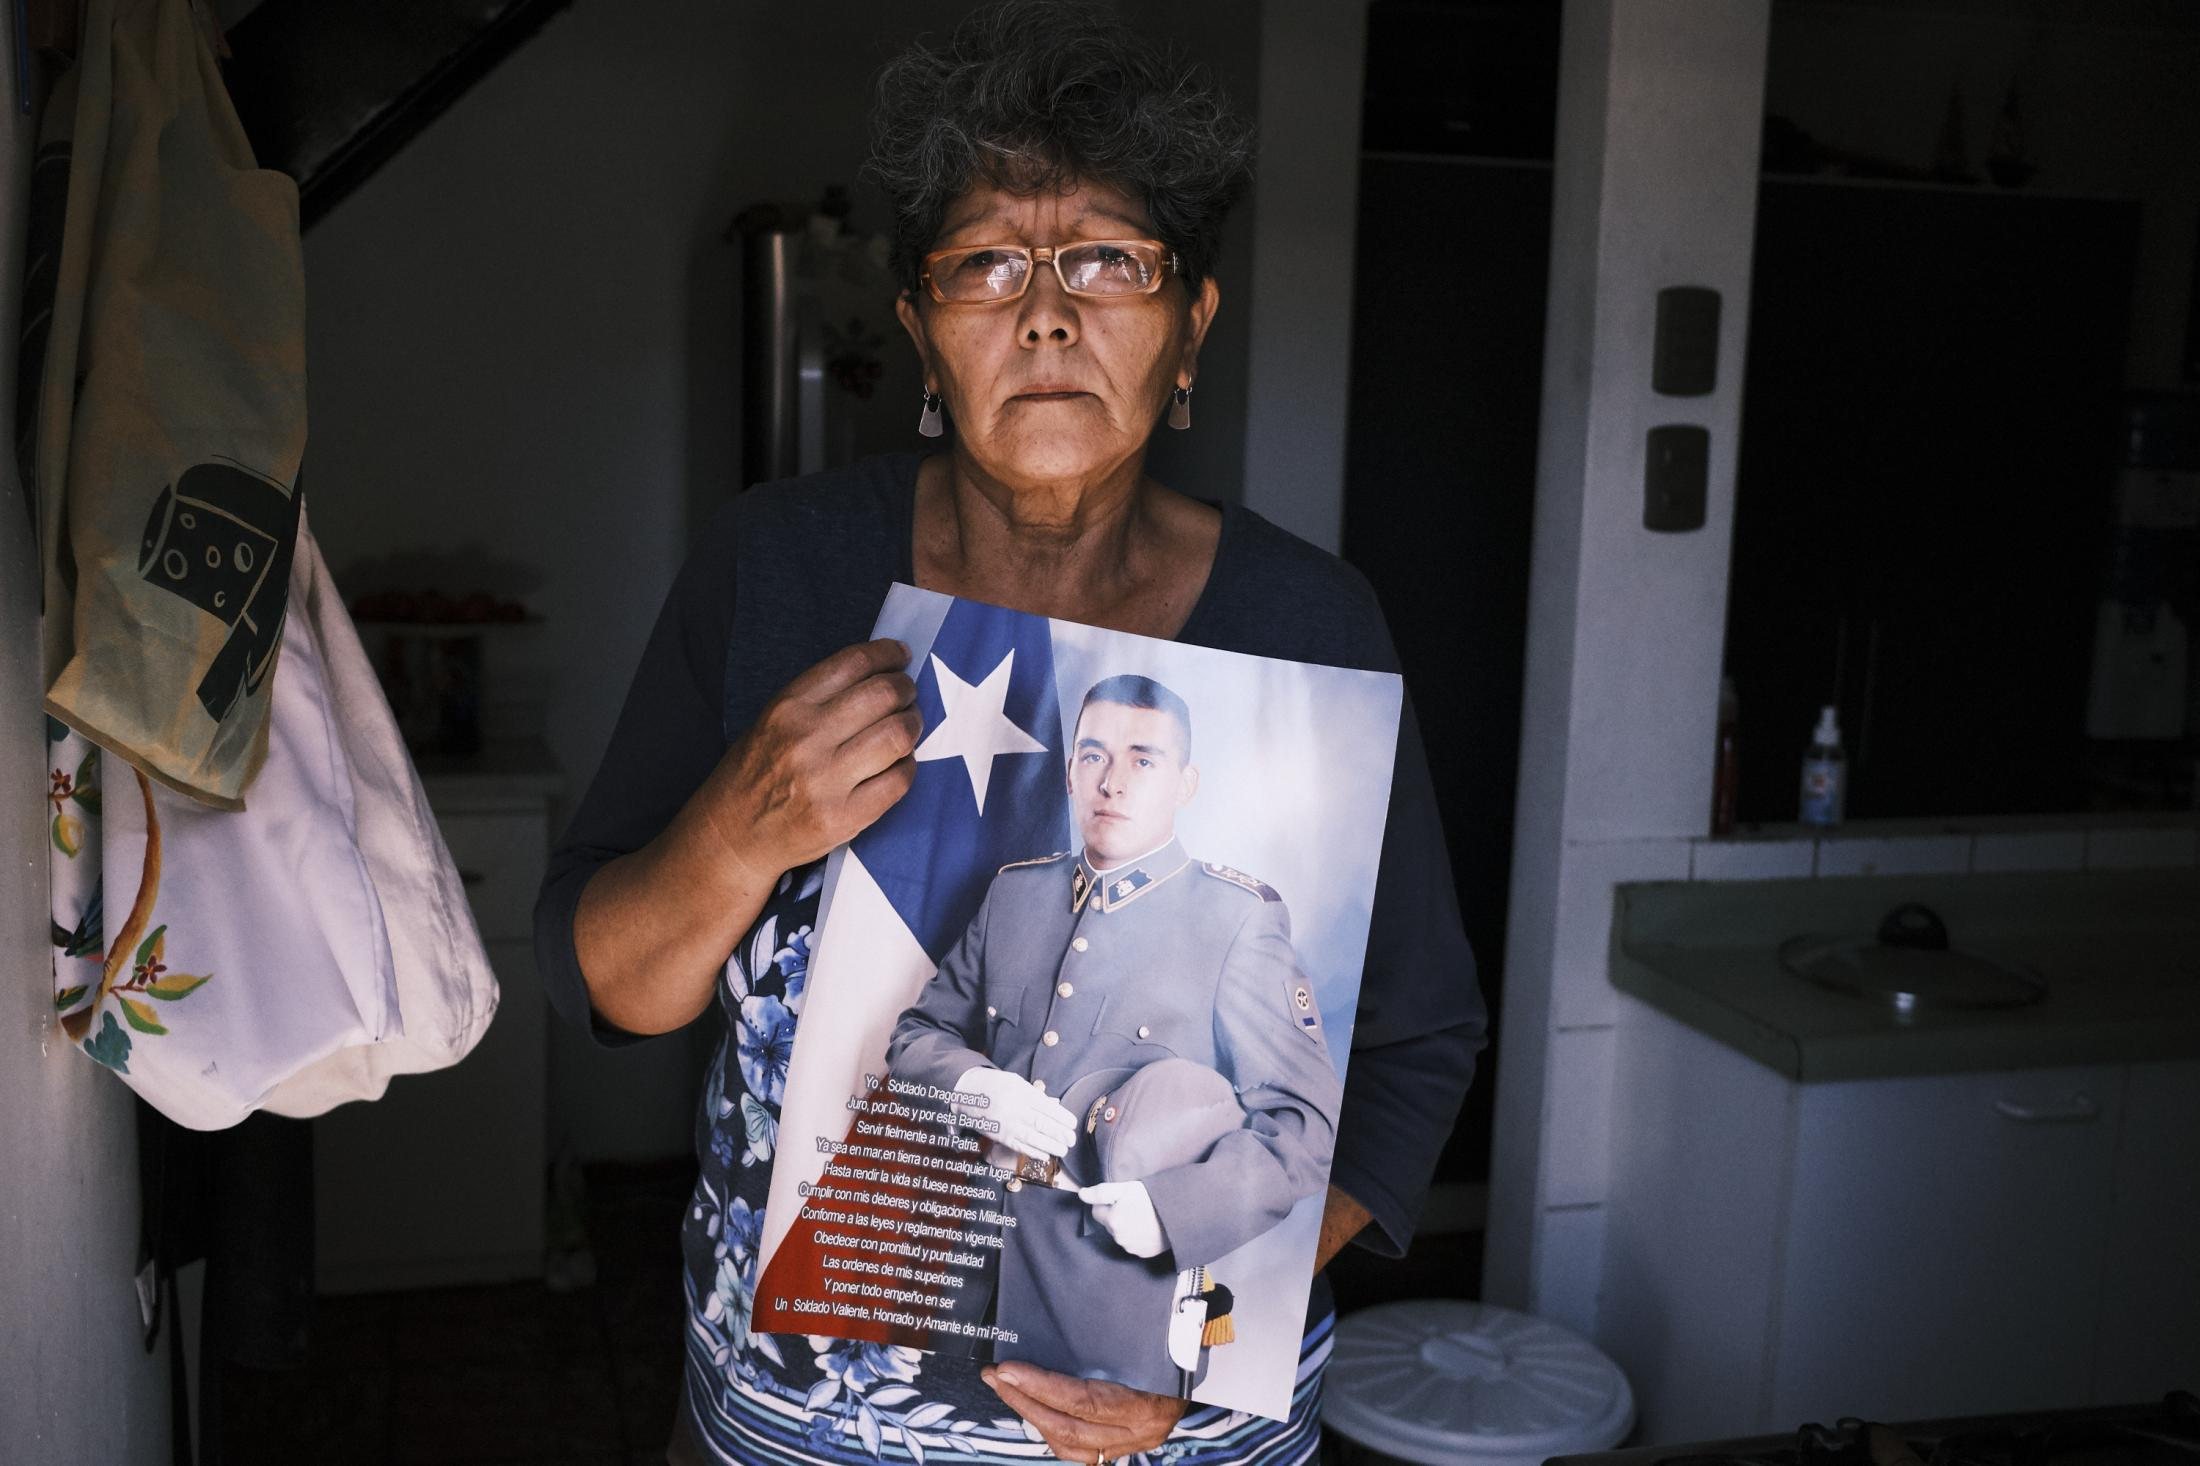 "Santiago, Chile, 2020. Alicia González, holds her favorite picture of her son Danilo wearing his military uniform. She explains in an interview: ""Danilo was not a delinquent. He was going to work and made a mistake. He should be alive but instead was murdered by the government's hitmen who pretend that wearing a uniform gives them some power. I want justice."" During the night of March 4, 2020, Danilo crashed his car into a police patrol car at a tollbooth station. An ensuing argument ended with Danilo being shot and killed by the police. Later videos from witnesses show how after the crash, cops put handcuffs on Danilo, and while he was on the ground begging for his life, one fired his gun at him."